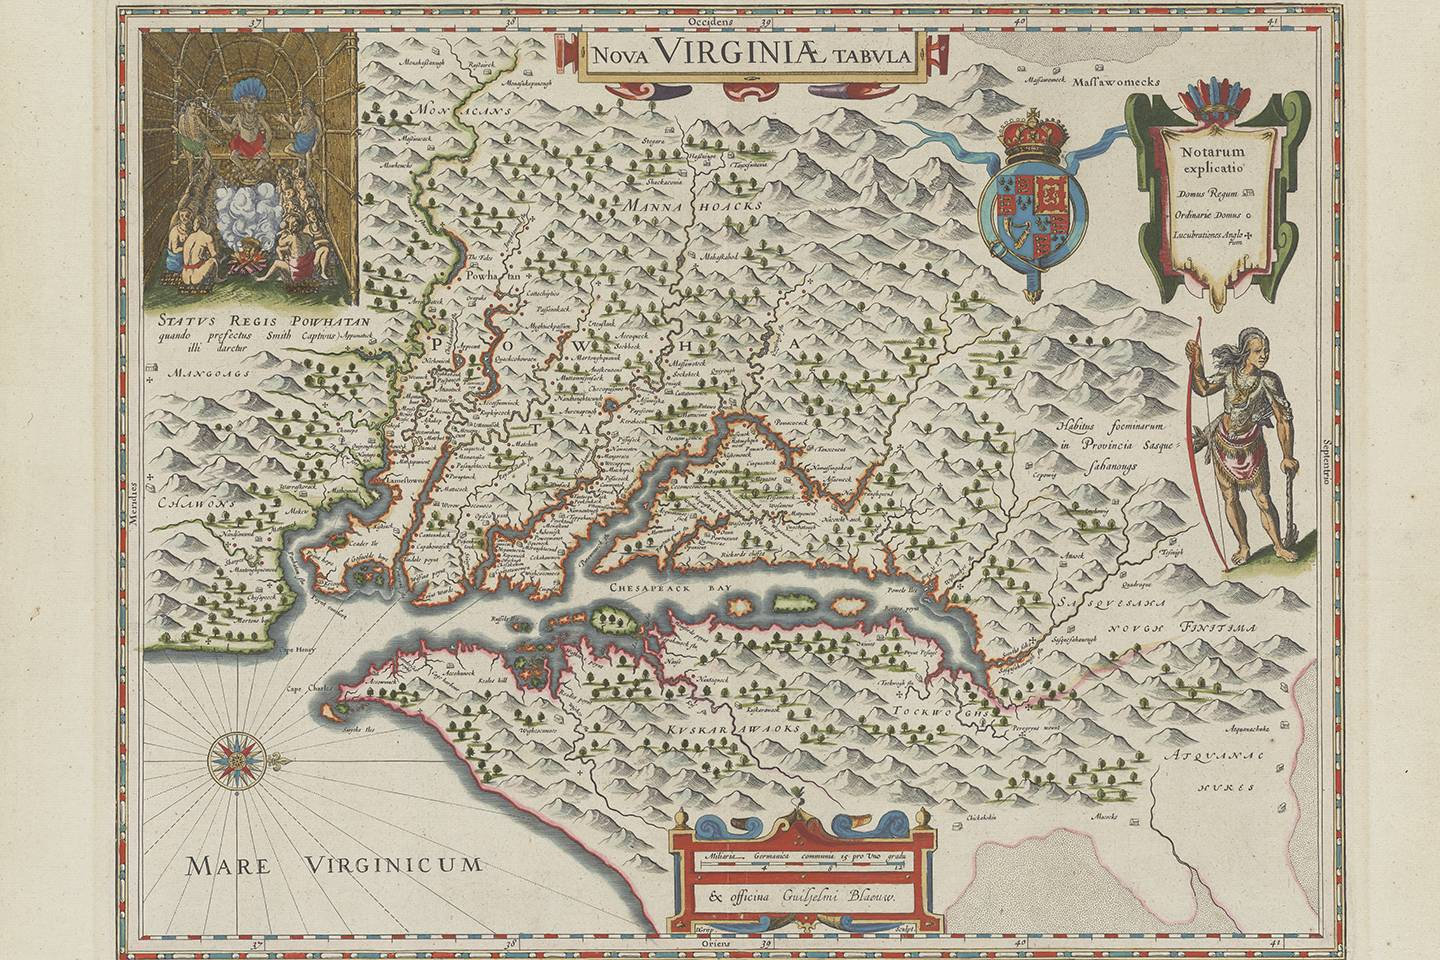 Map from the 1630s